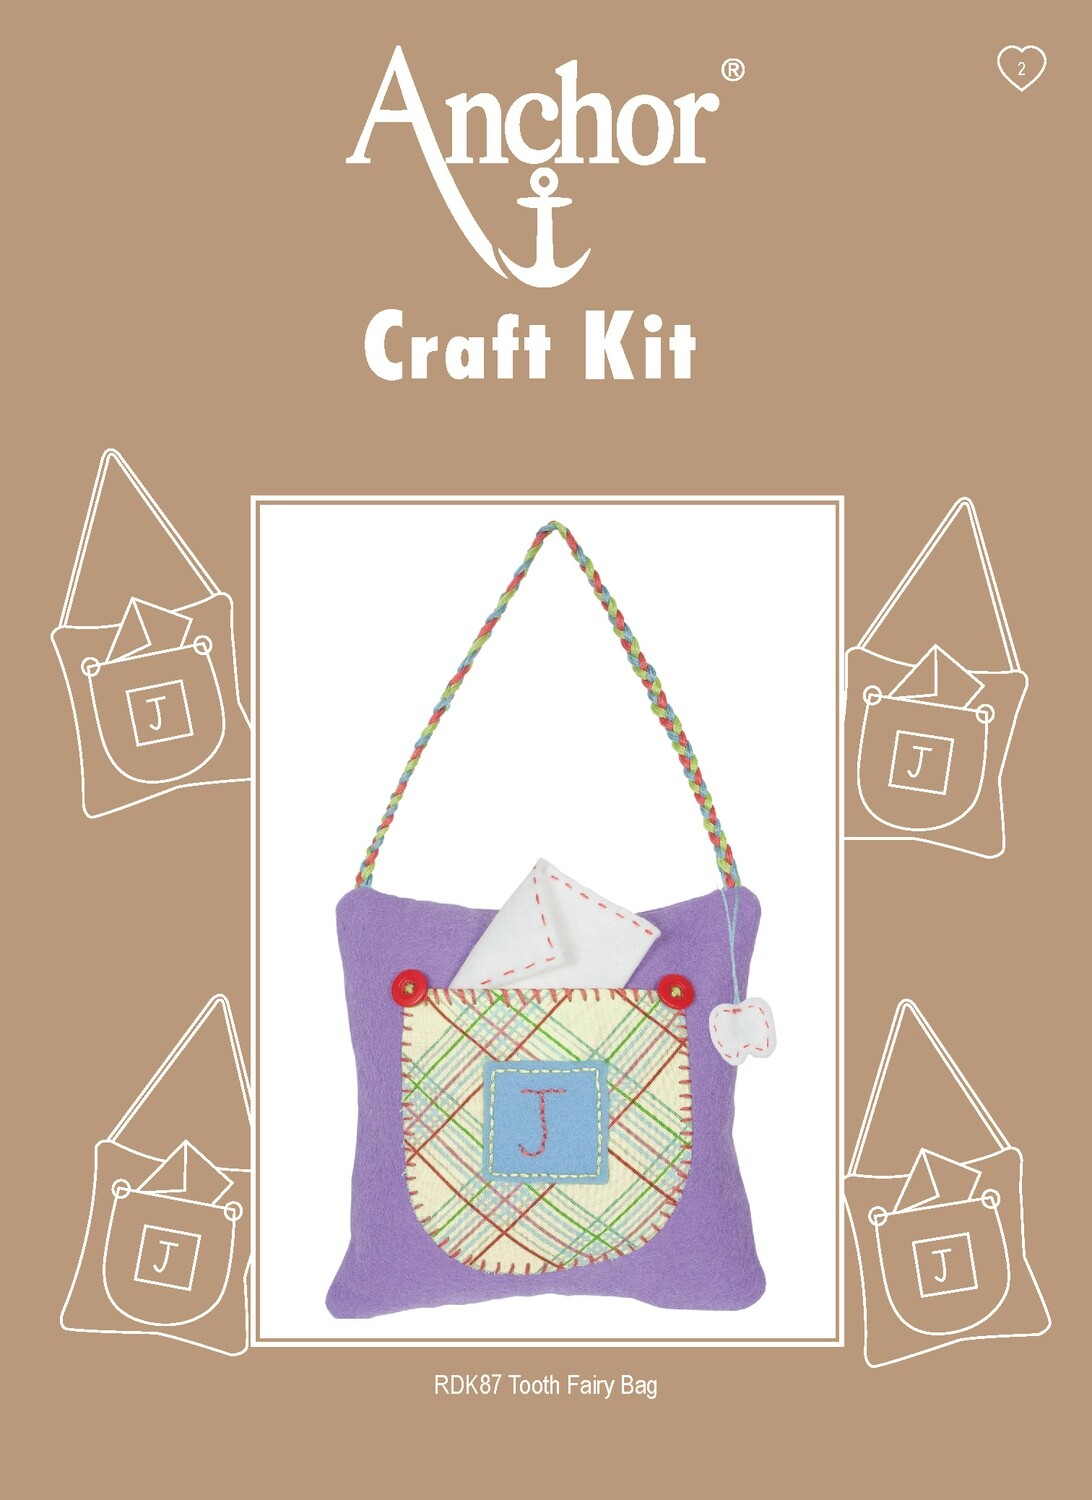 Anchor Craft Kit - Tooth Fairy Bag